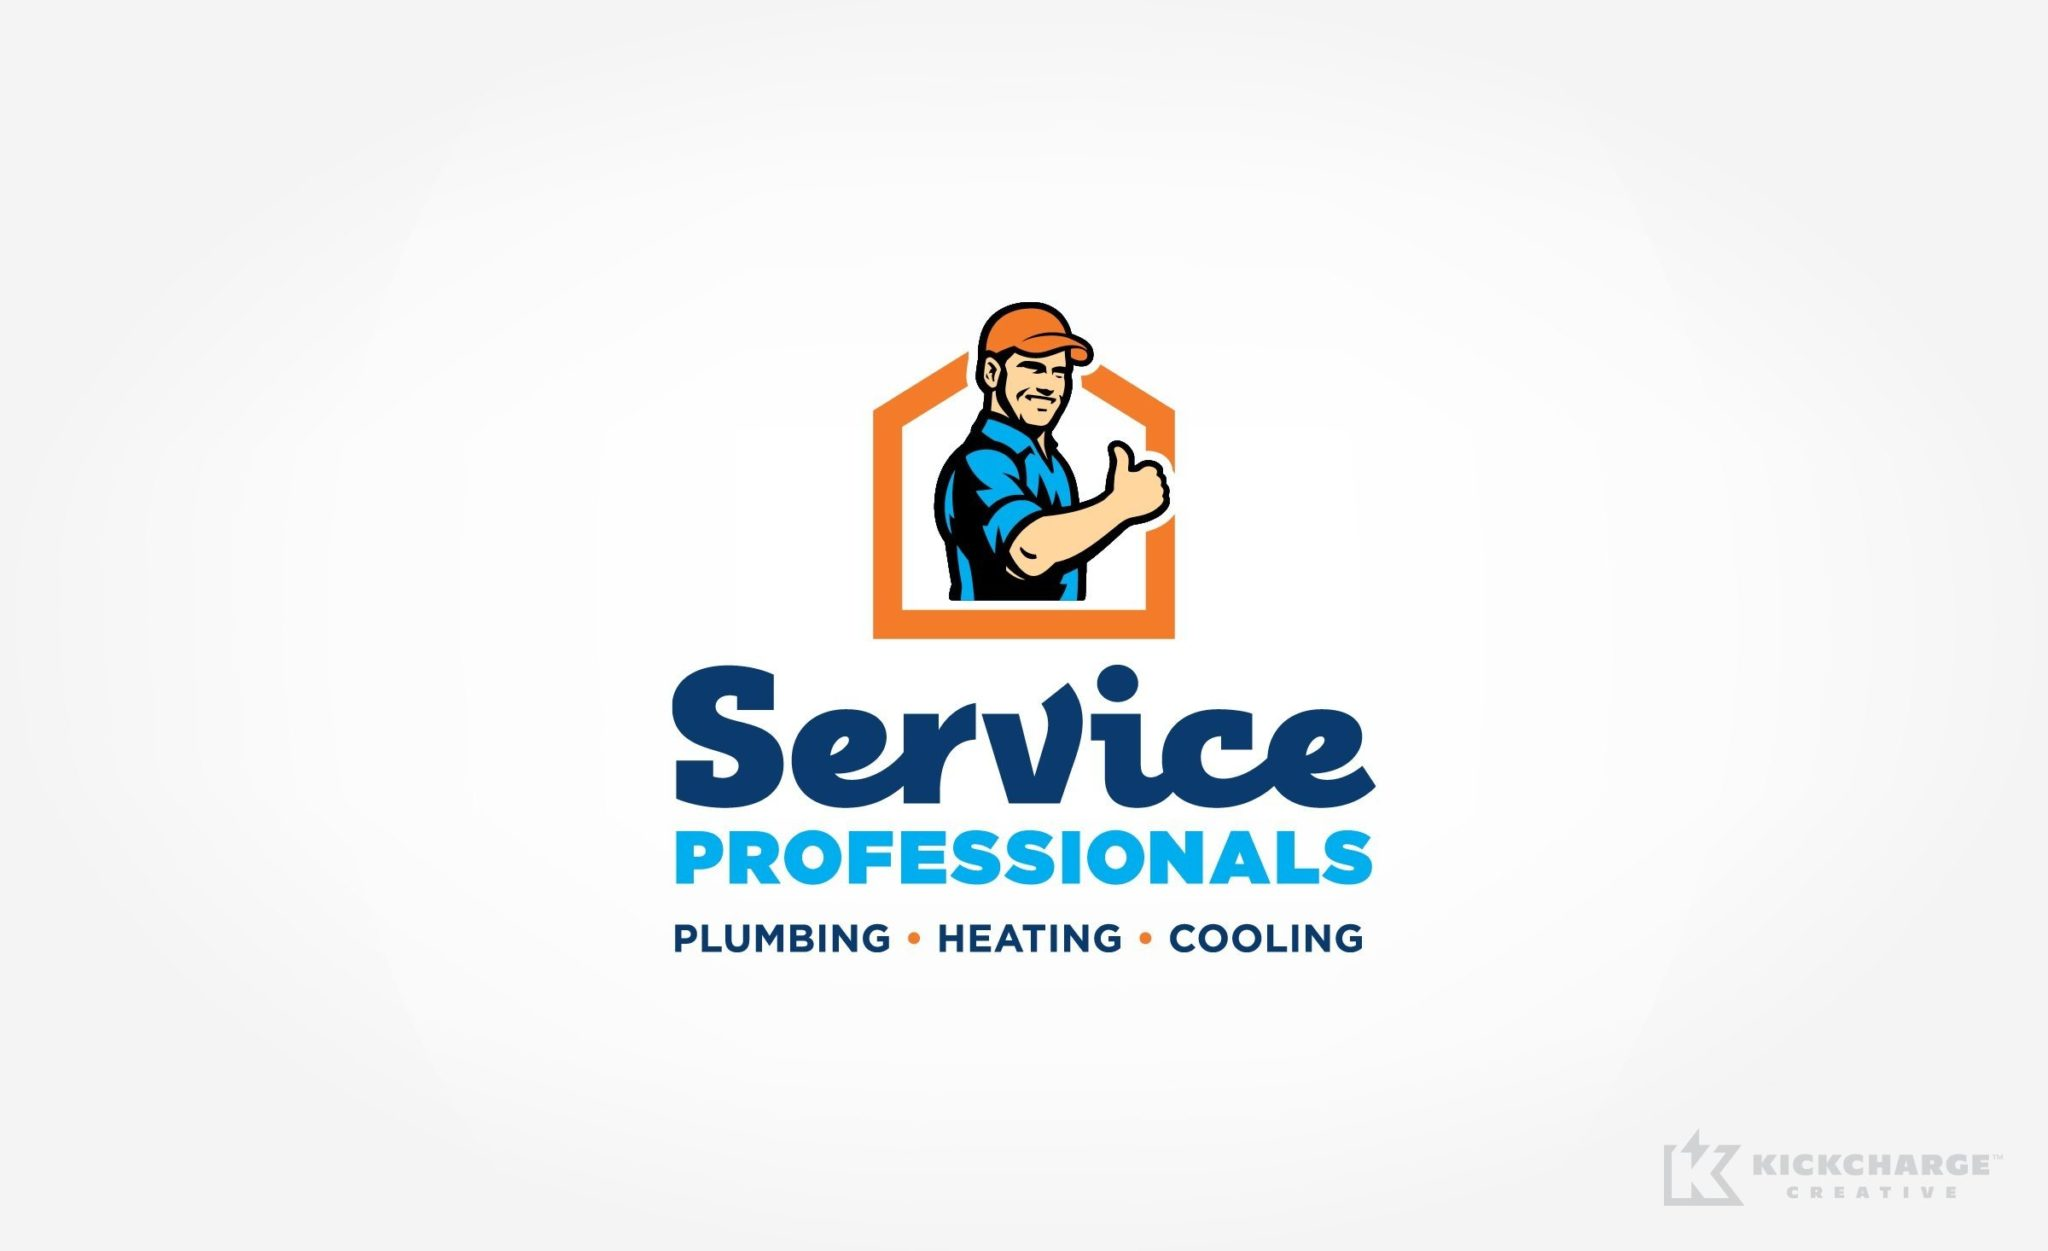 Logo design for an HVAC and plumbing company located in Union, NJ.